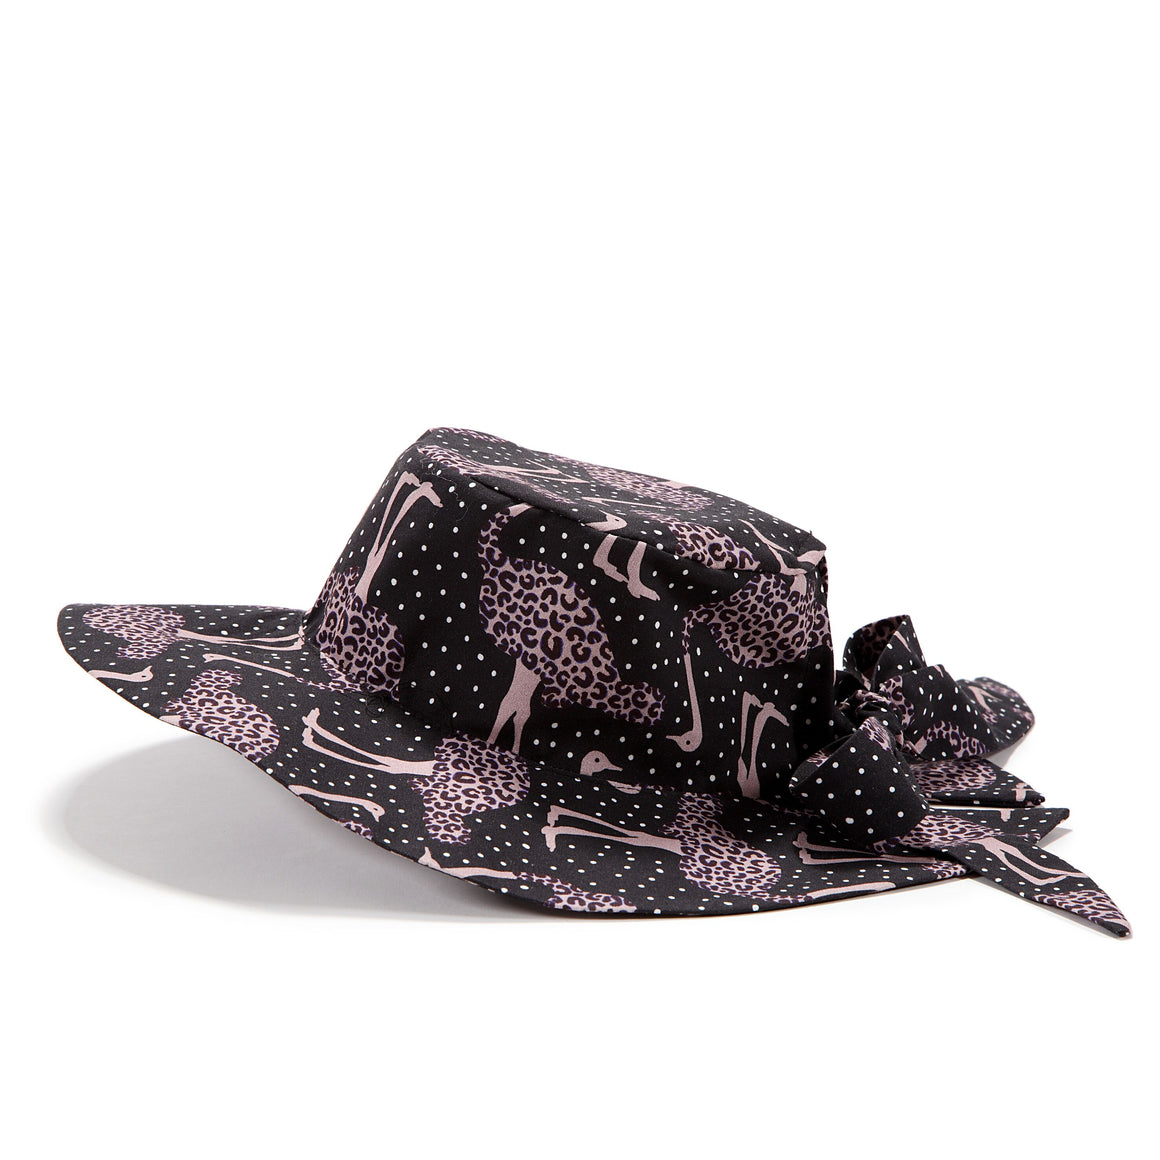 LITTLE LADY HAT hattu - Speedy Me Dark